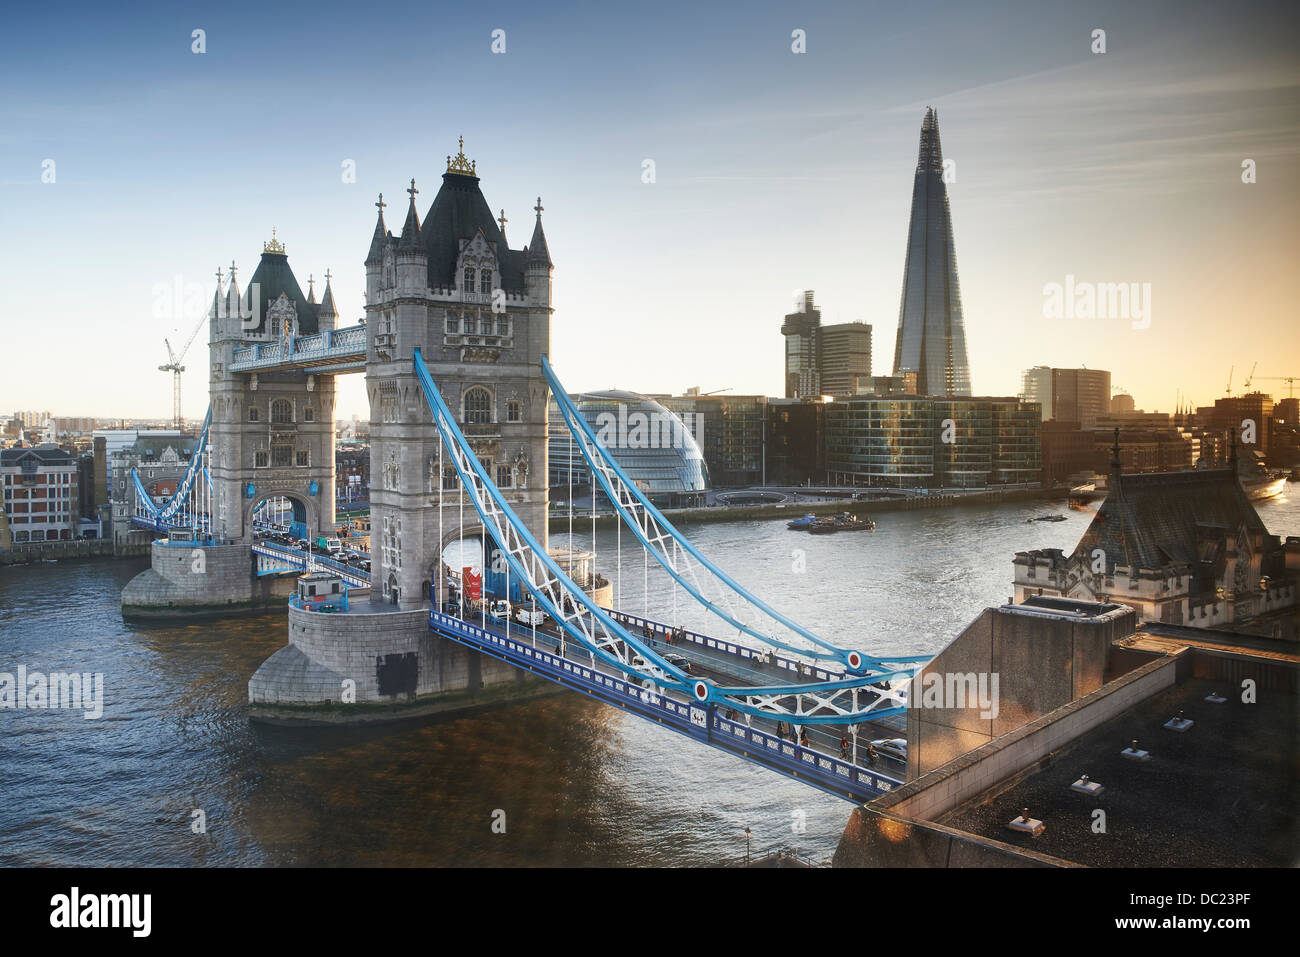 Tower Bridge and The Shard, London, UK - Stock Image